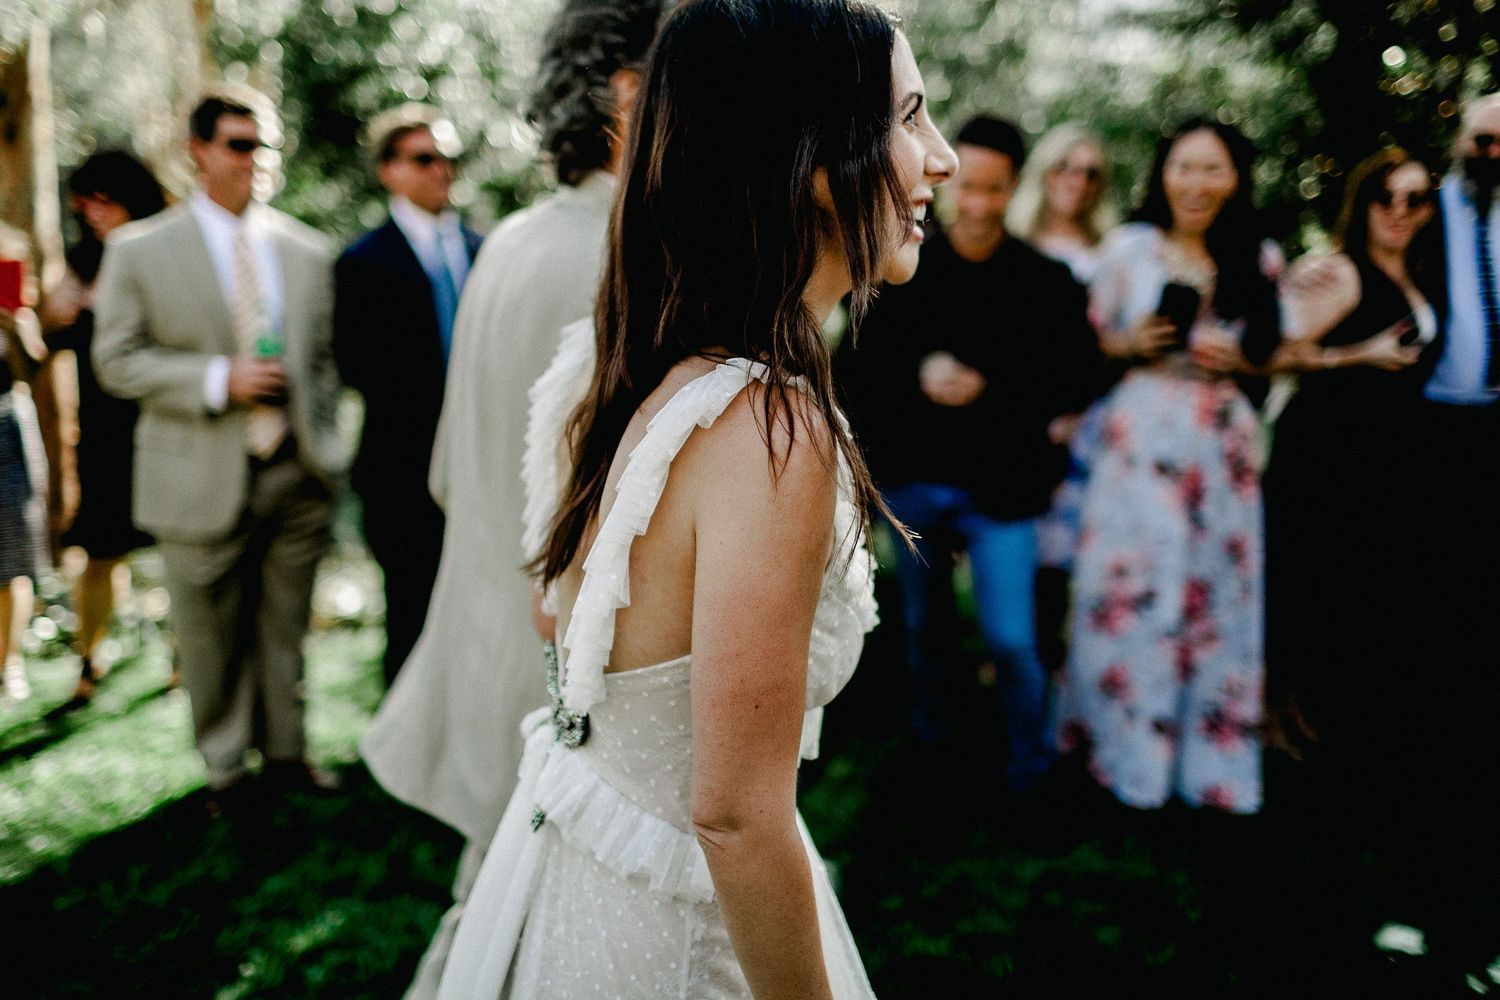 side shot of bride walking down and seeing guests in her wedding dress